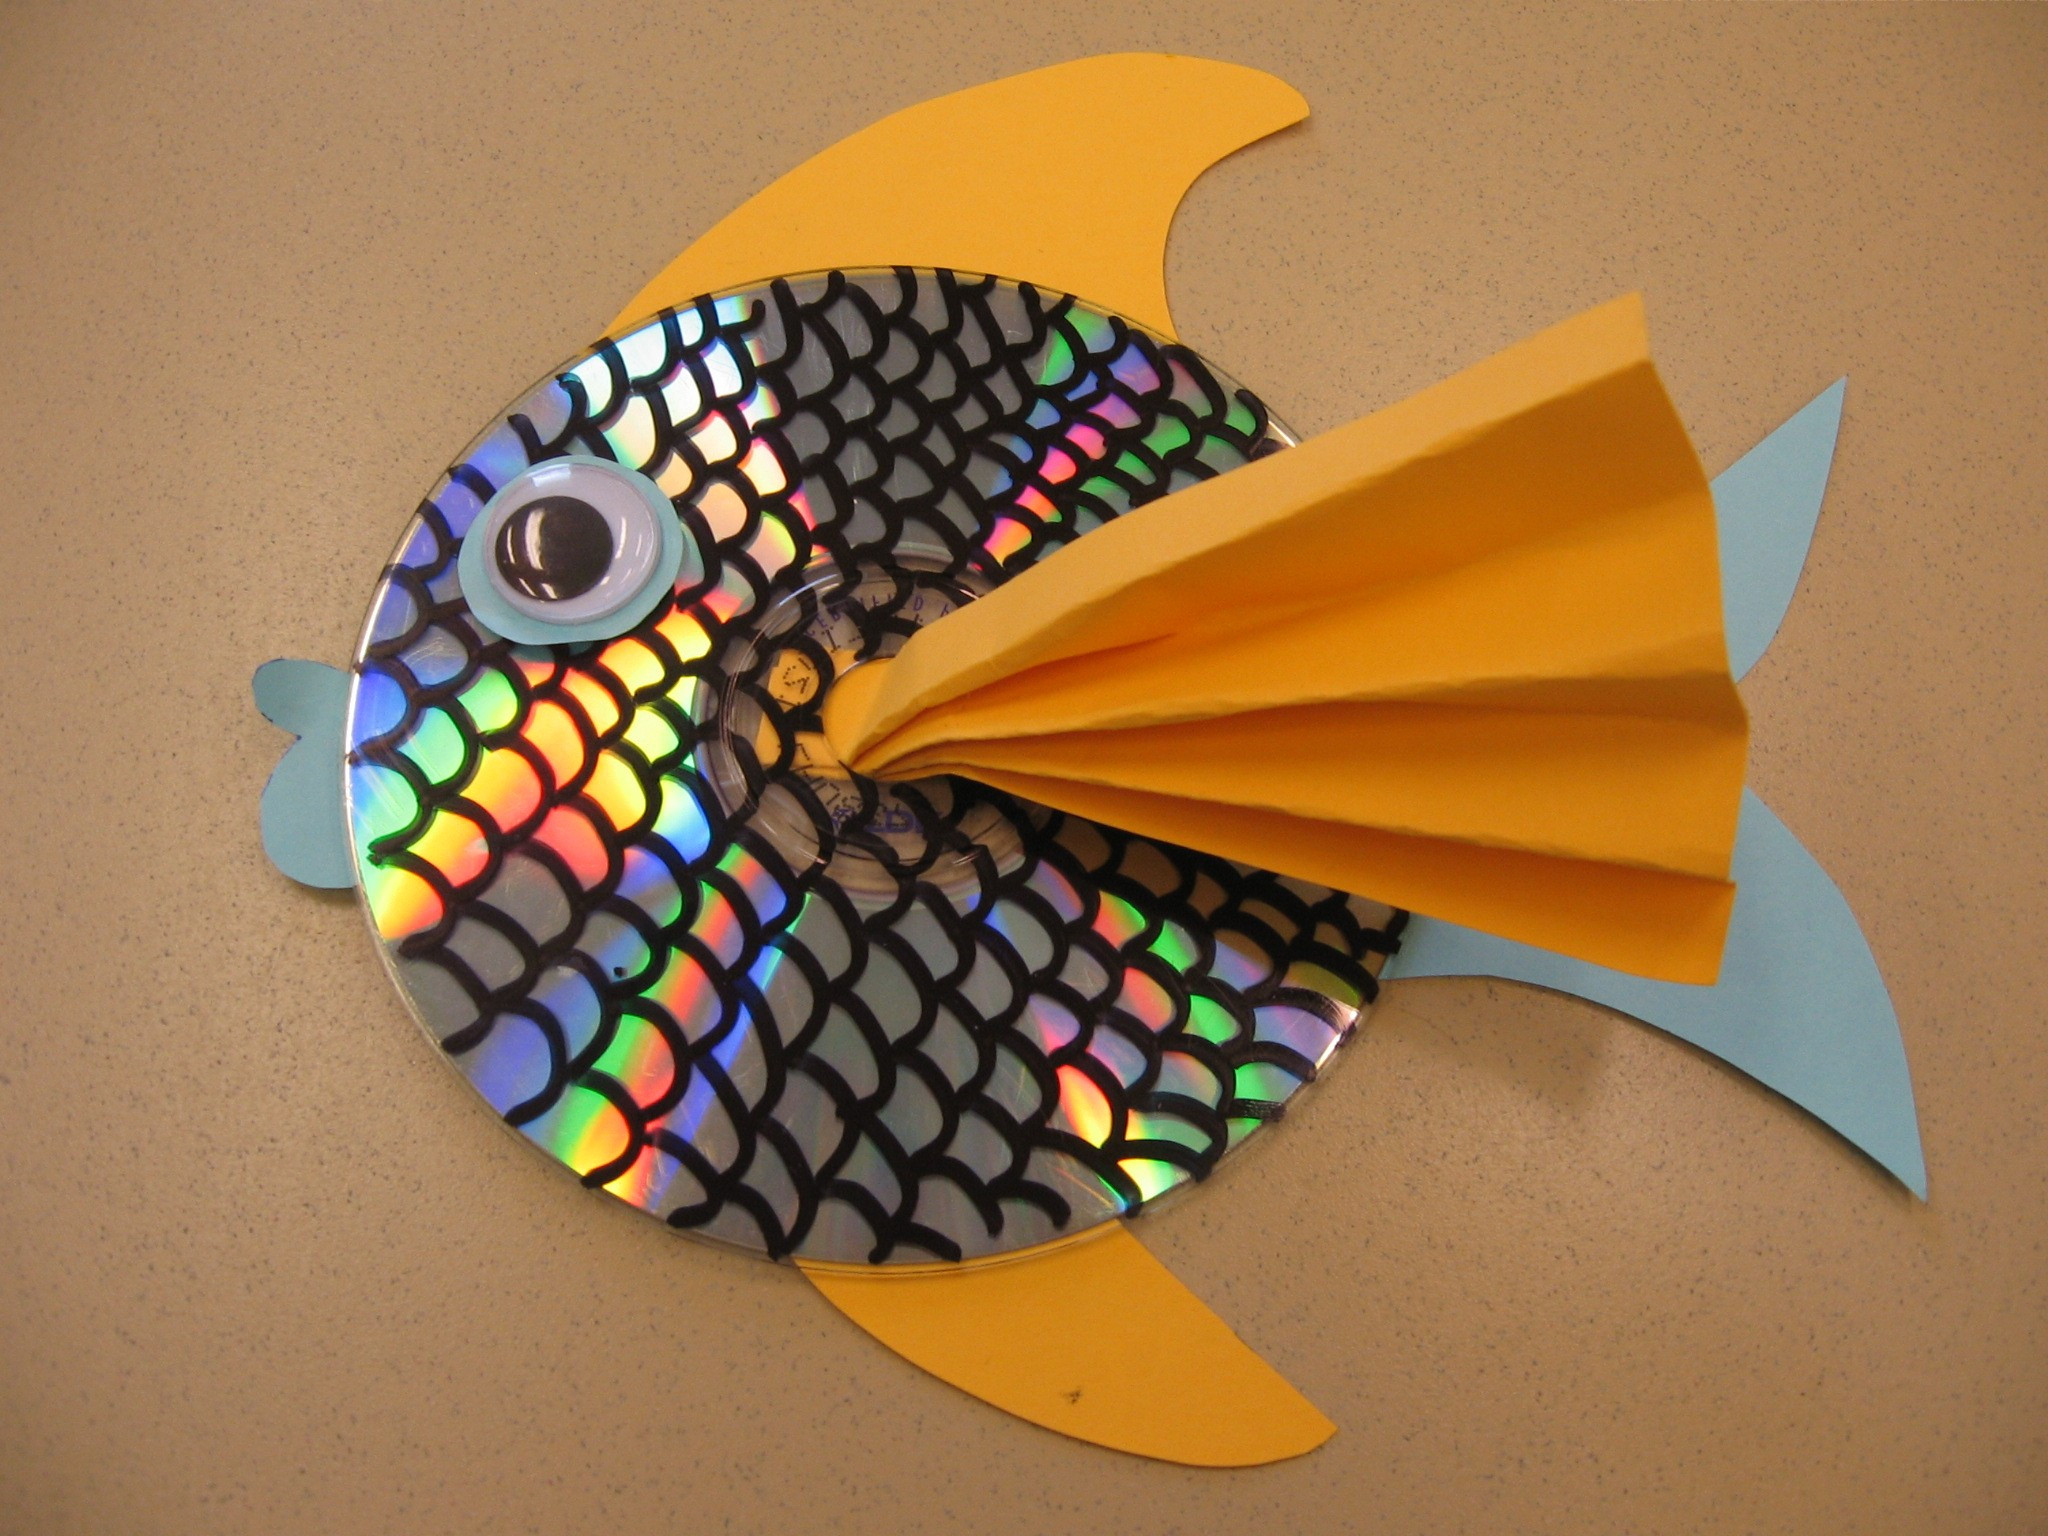 Best ideas about Art And Crafts . Save or Pin Kids Crafts For a Rainy Summer Day Now.